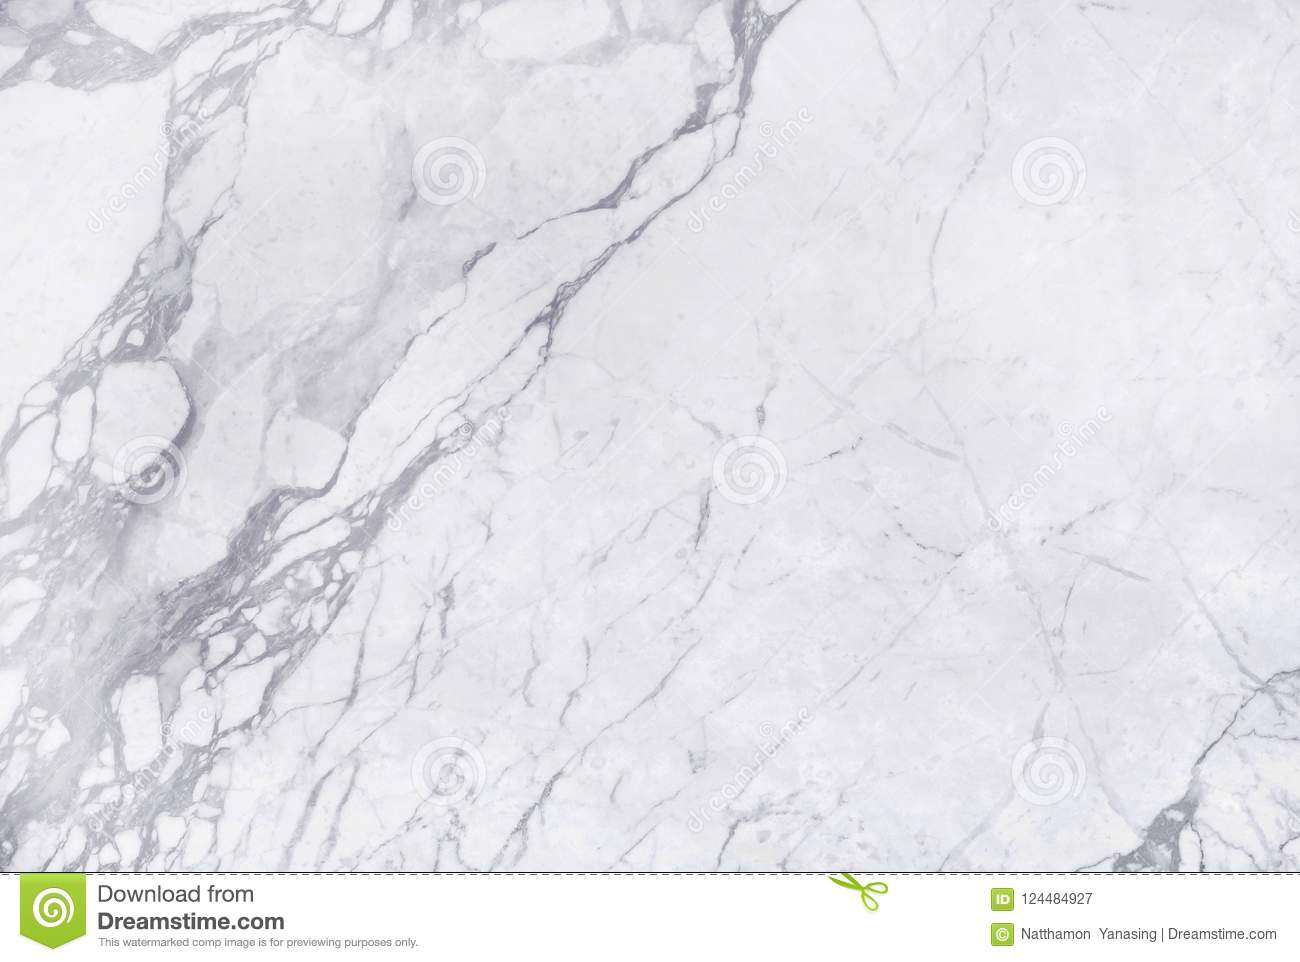 White grey marble texture background with detailed structure high resolution bright and luxurious.